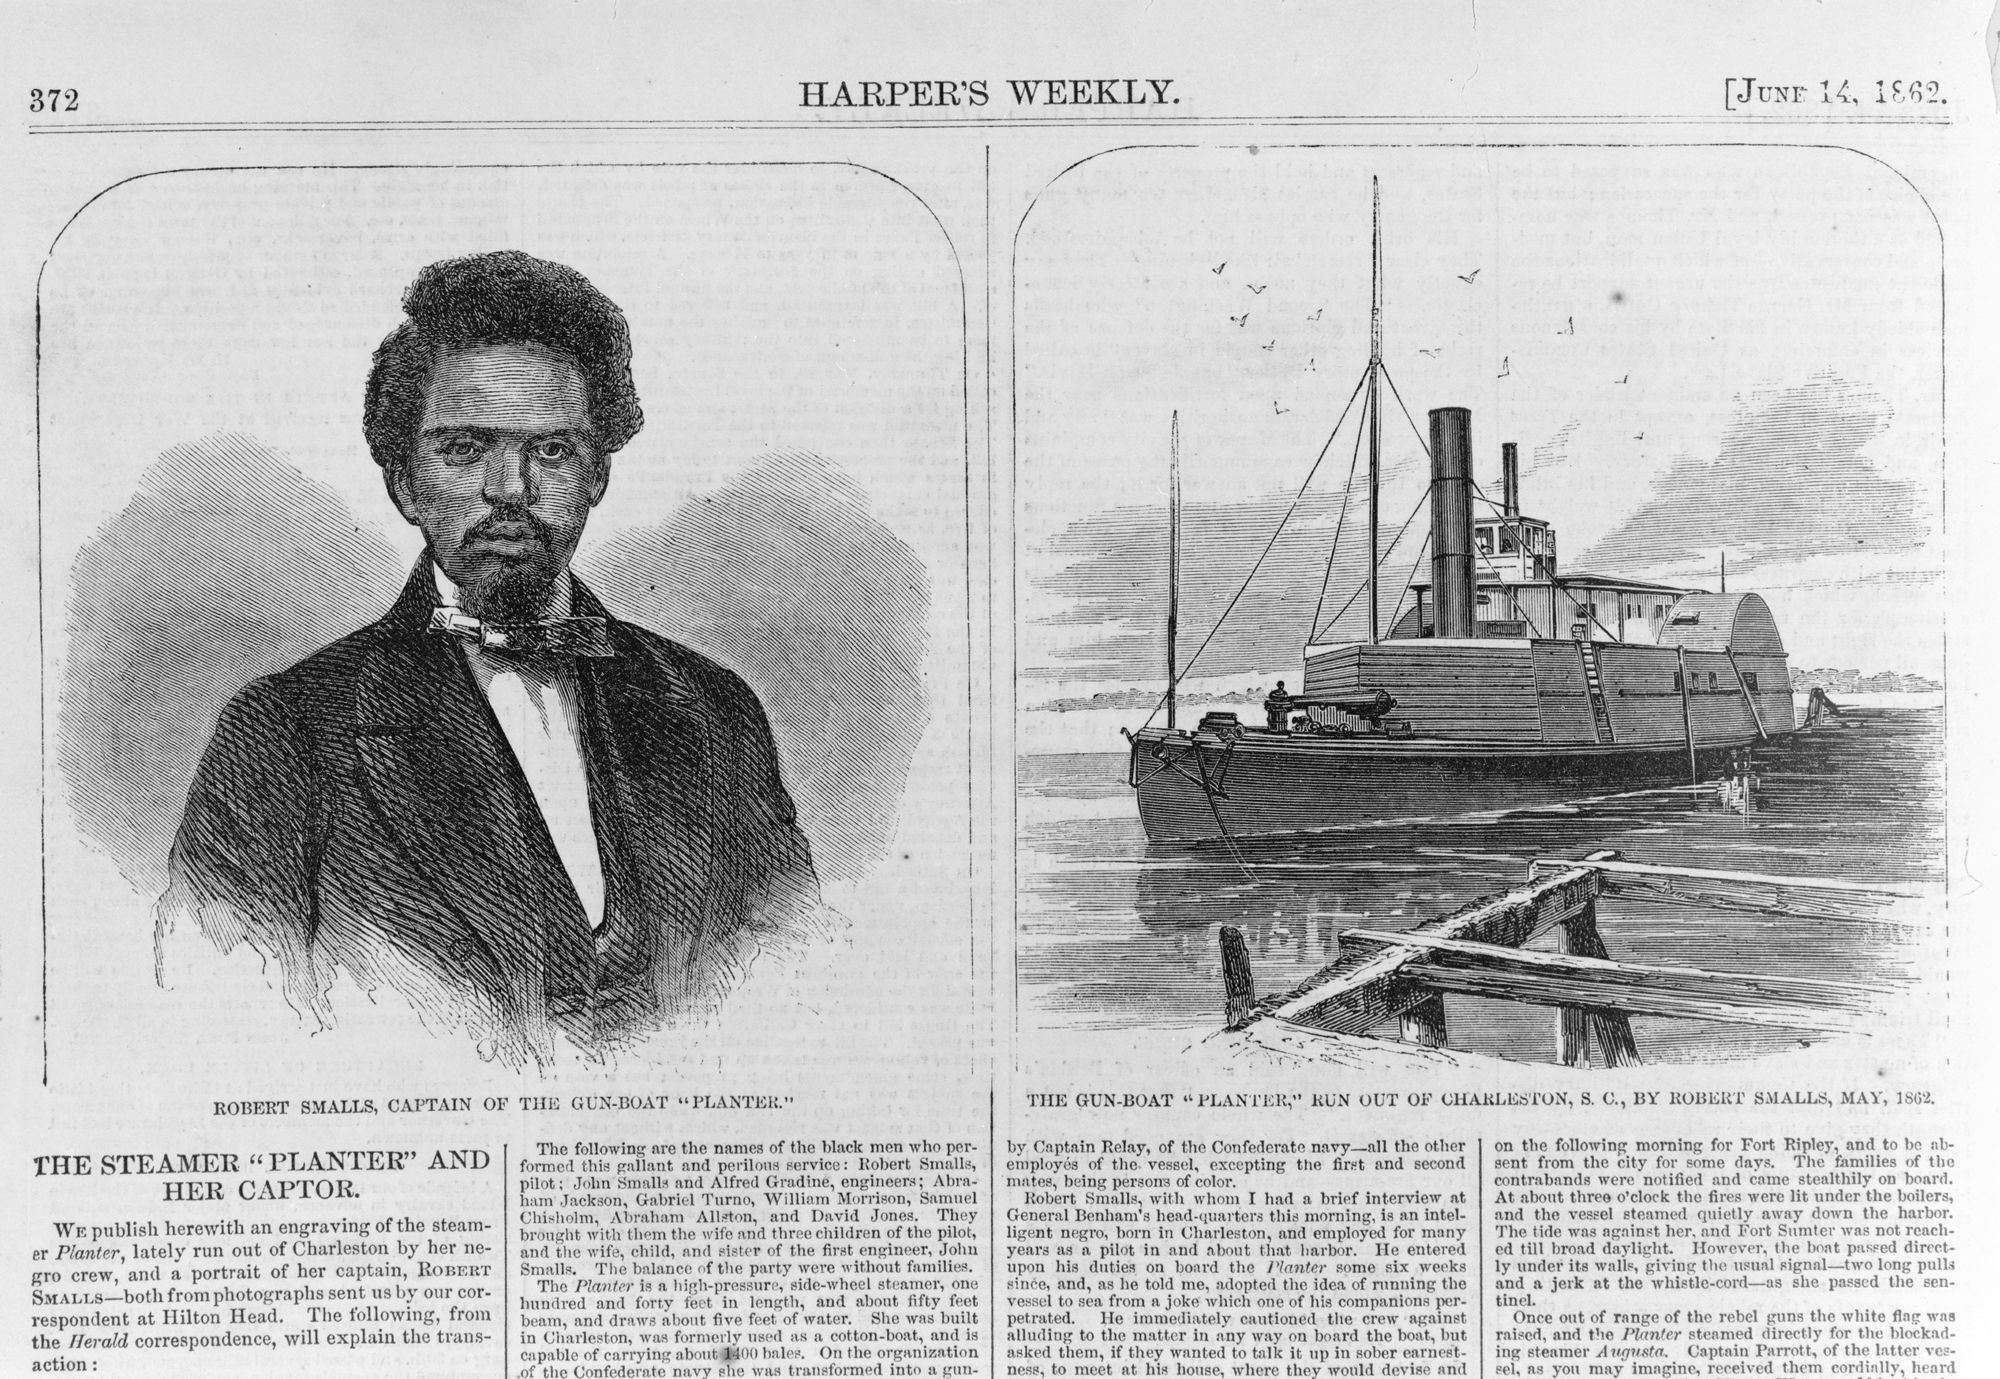 """Harper's Weekly reports on """"The Steamer 'Planter' and Her Captor,"""" June 14, 1862"""